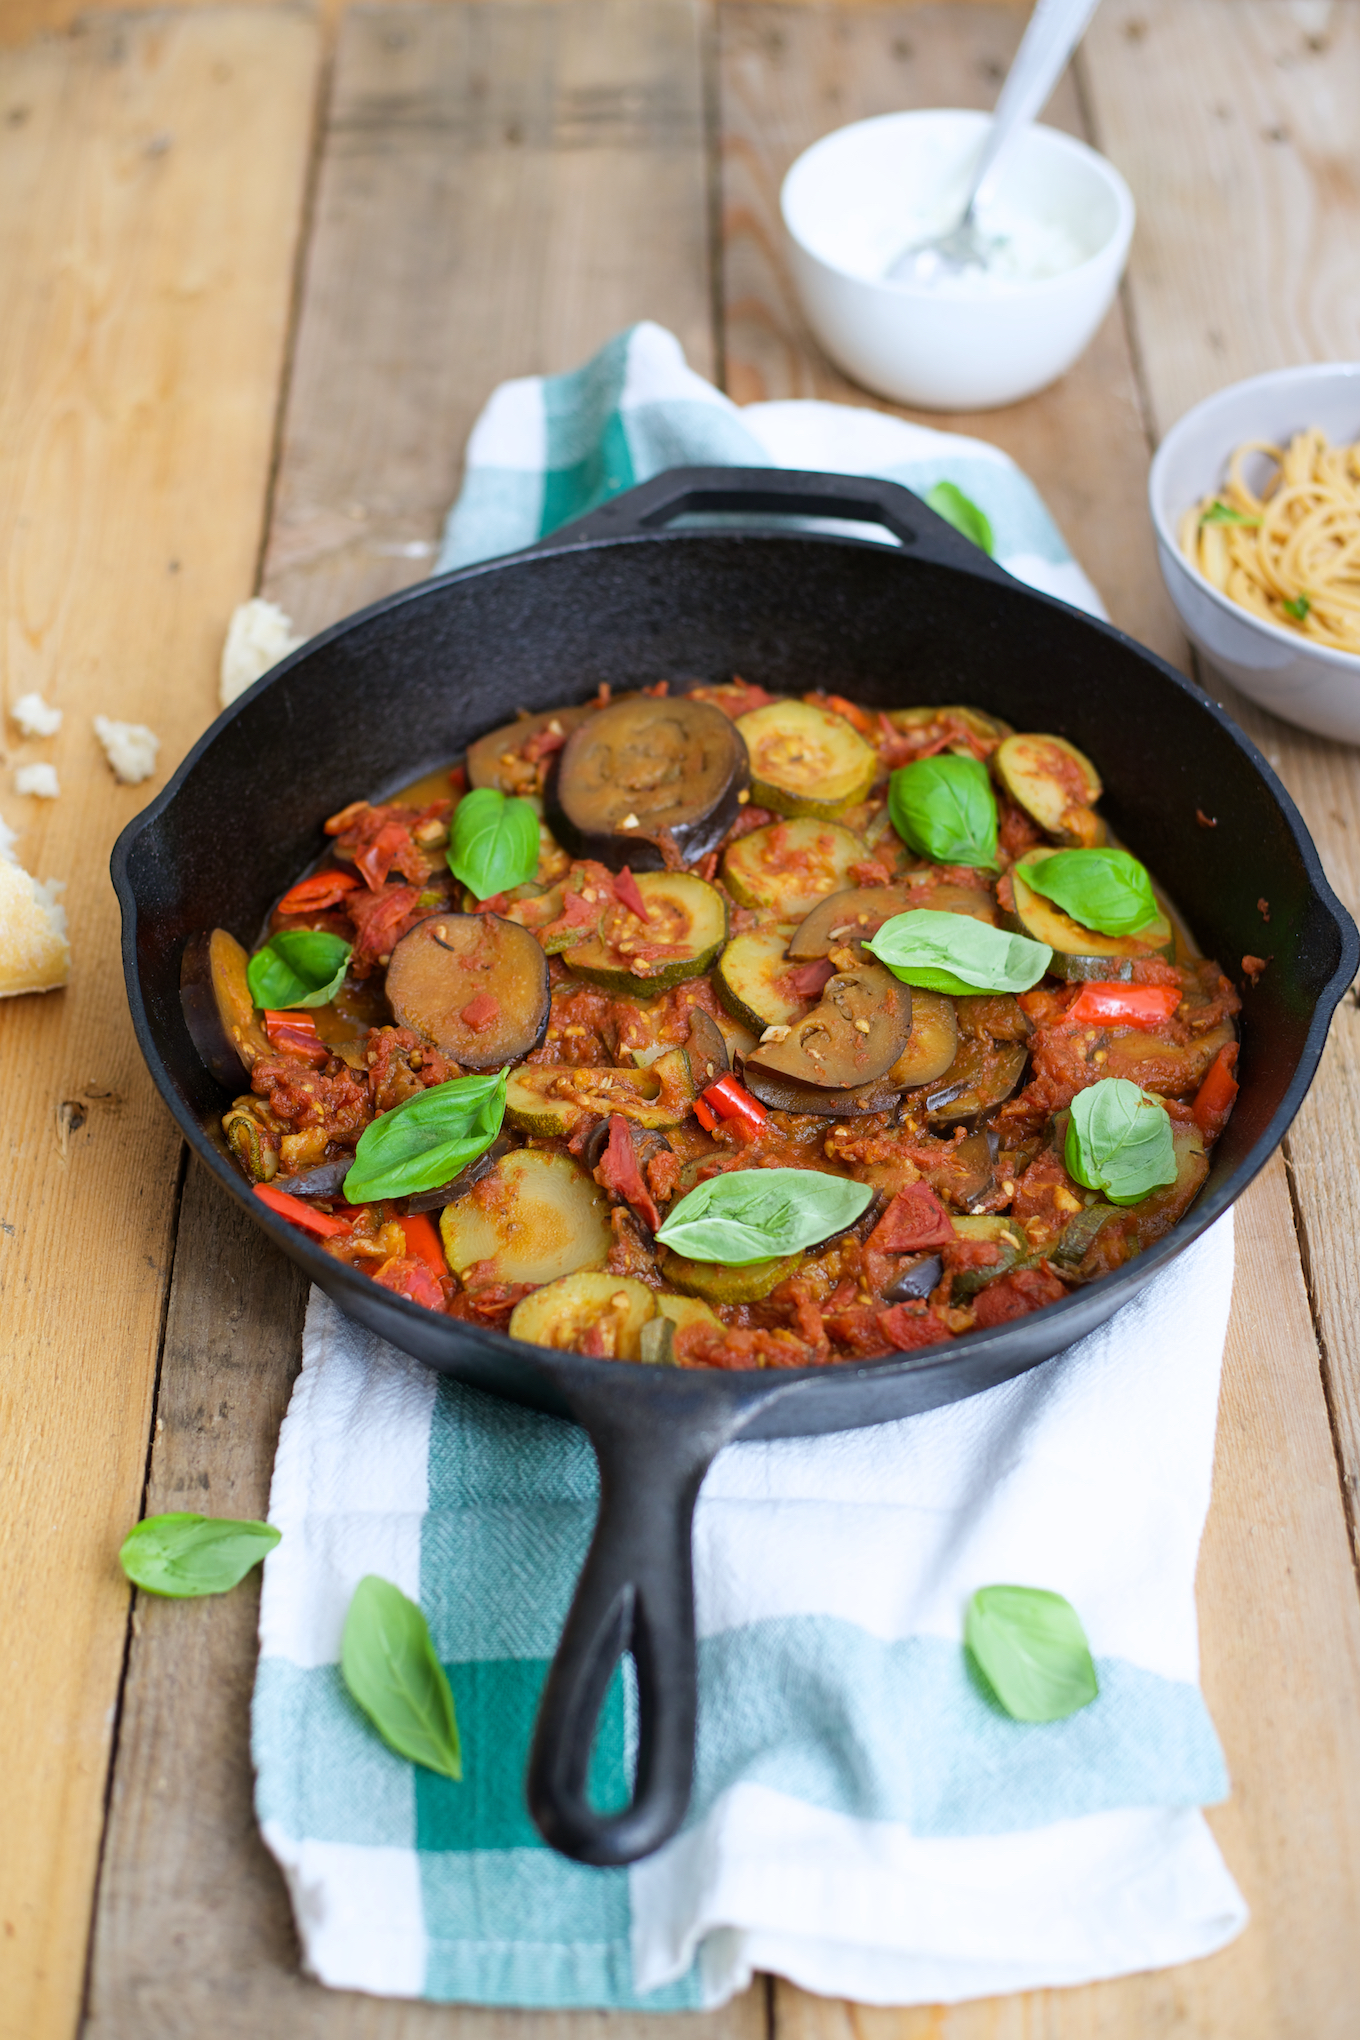 ratatouille recept, gezond en voor weightwatchers (1)